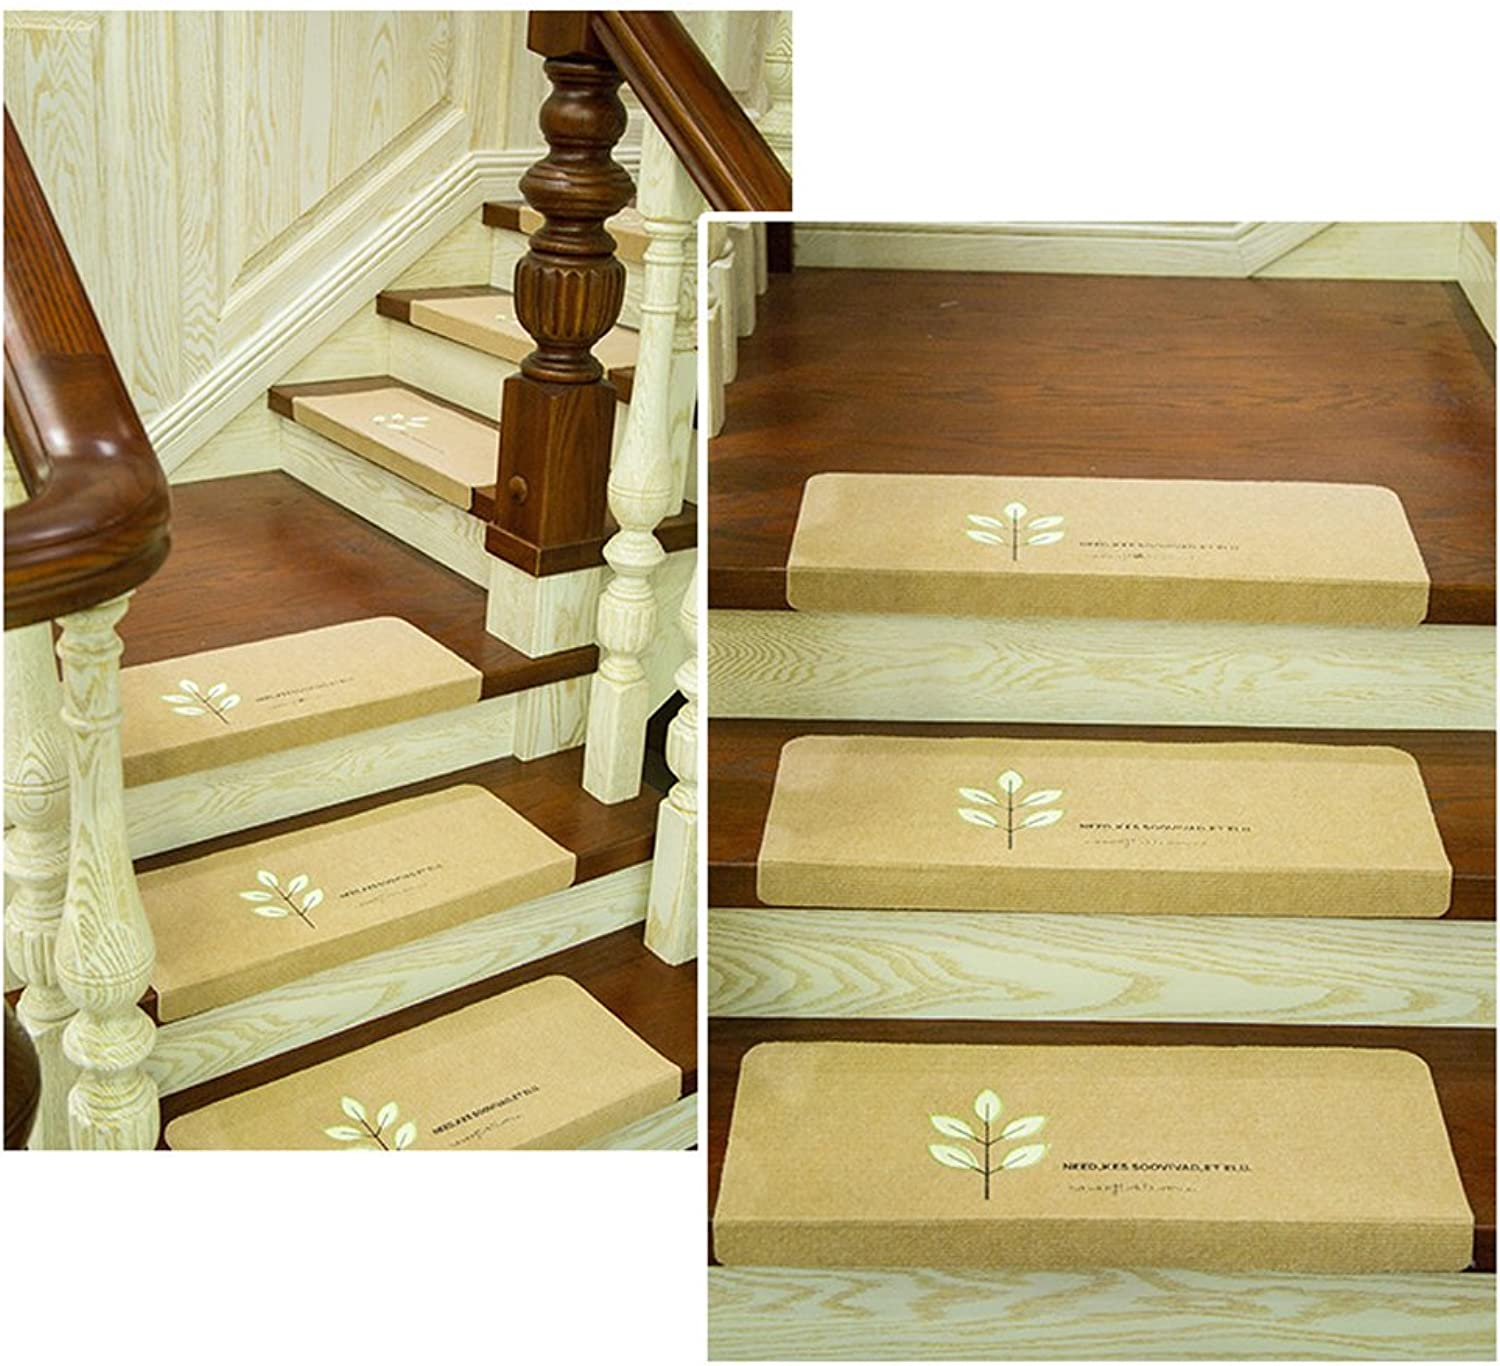 Staircase Pad Luminous Carpet Glue Self-Adhesive Wood High-Grade Non-Slip Embroidered Mats Foot Mats (Beige),8Pcs,70  22  4.5Cm